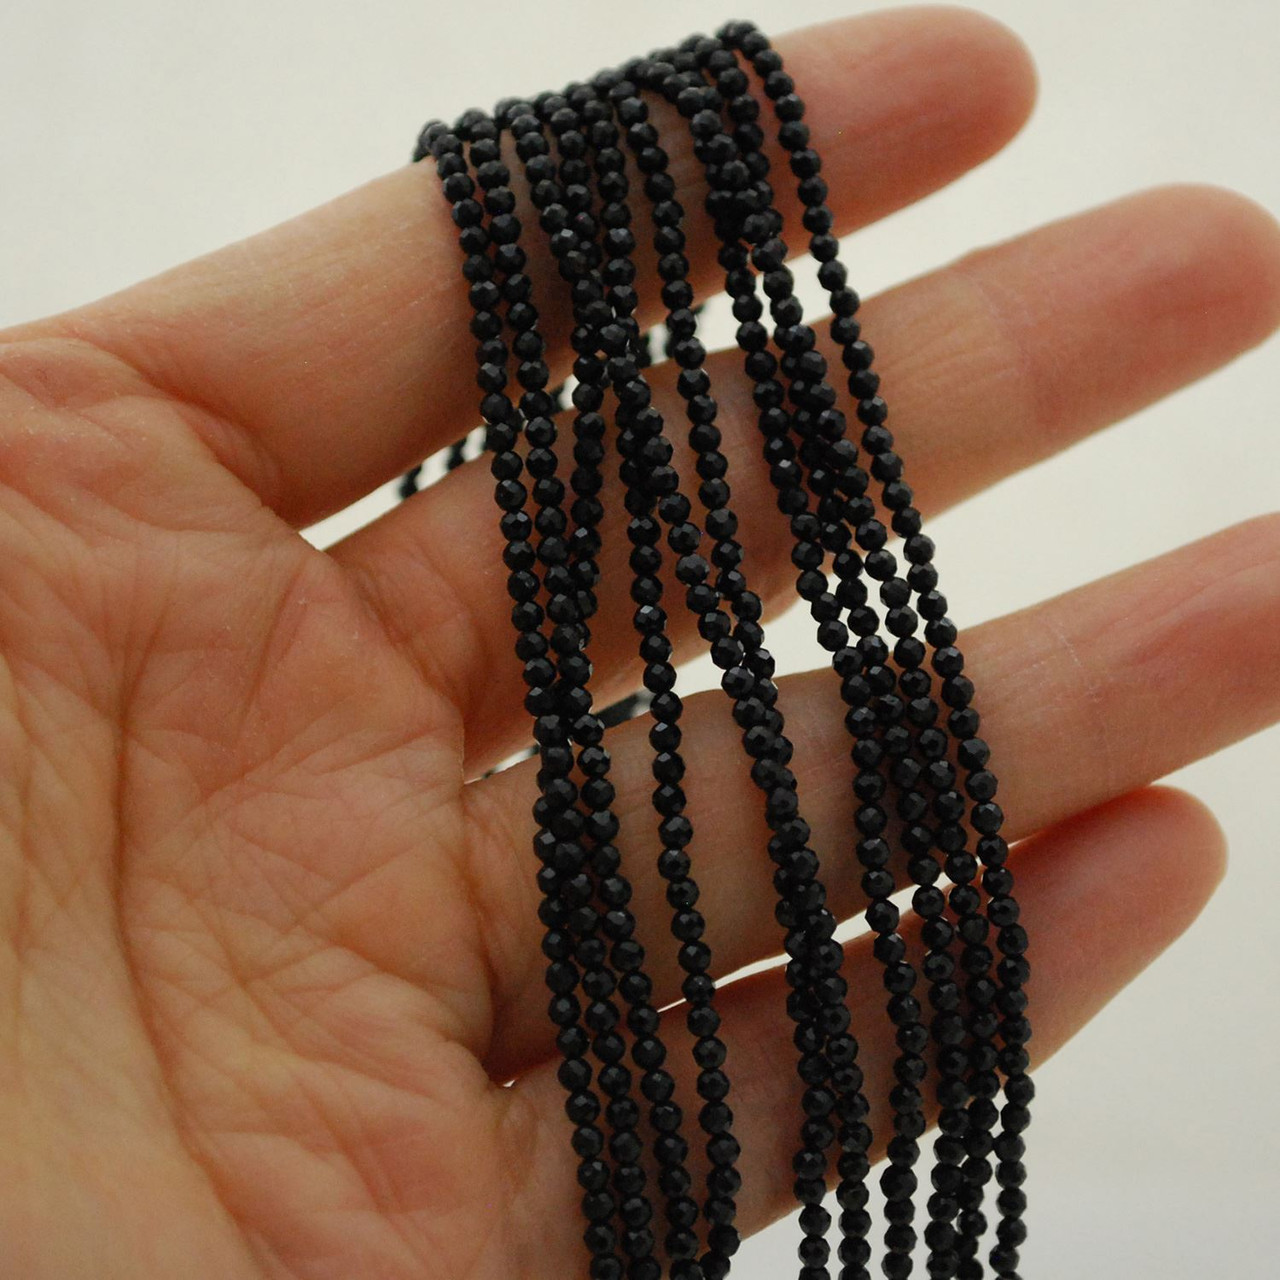 15.5 strand High Quality Grade A Natural Black Spinel Semi-Precious Gemstone FACETED Round Beads approx 2mm